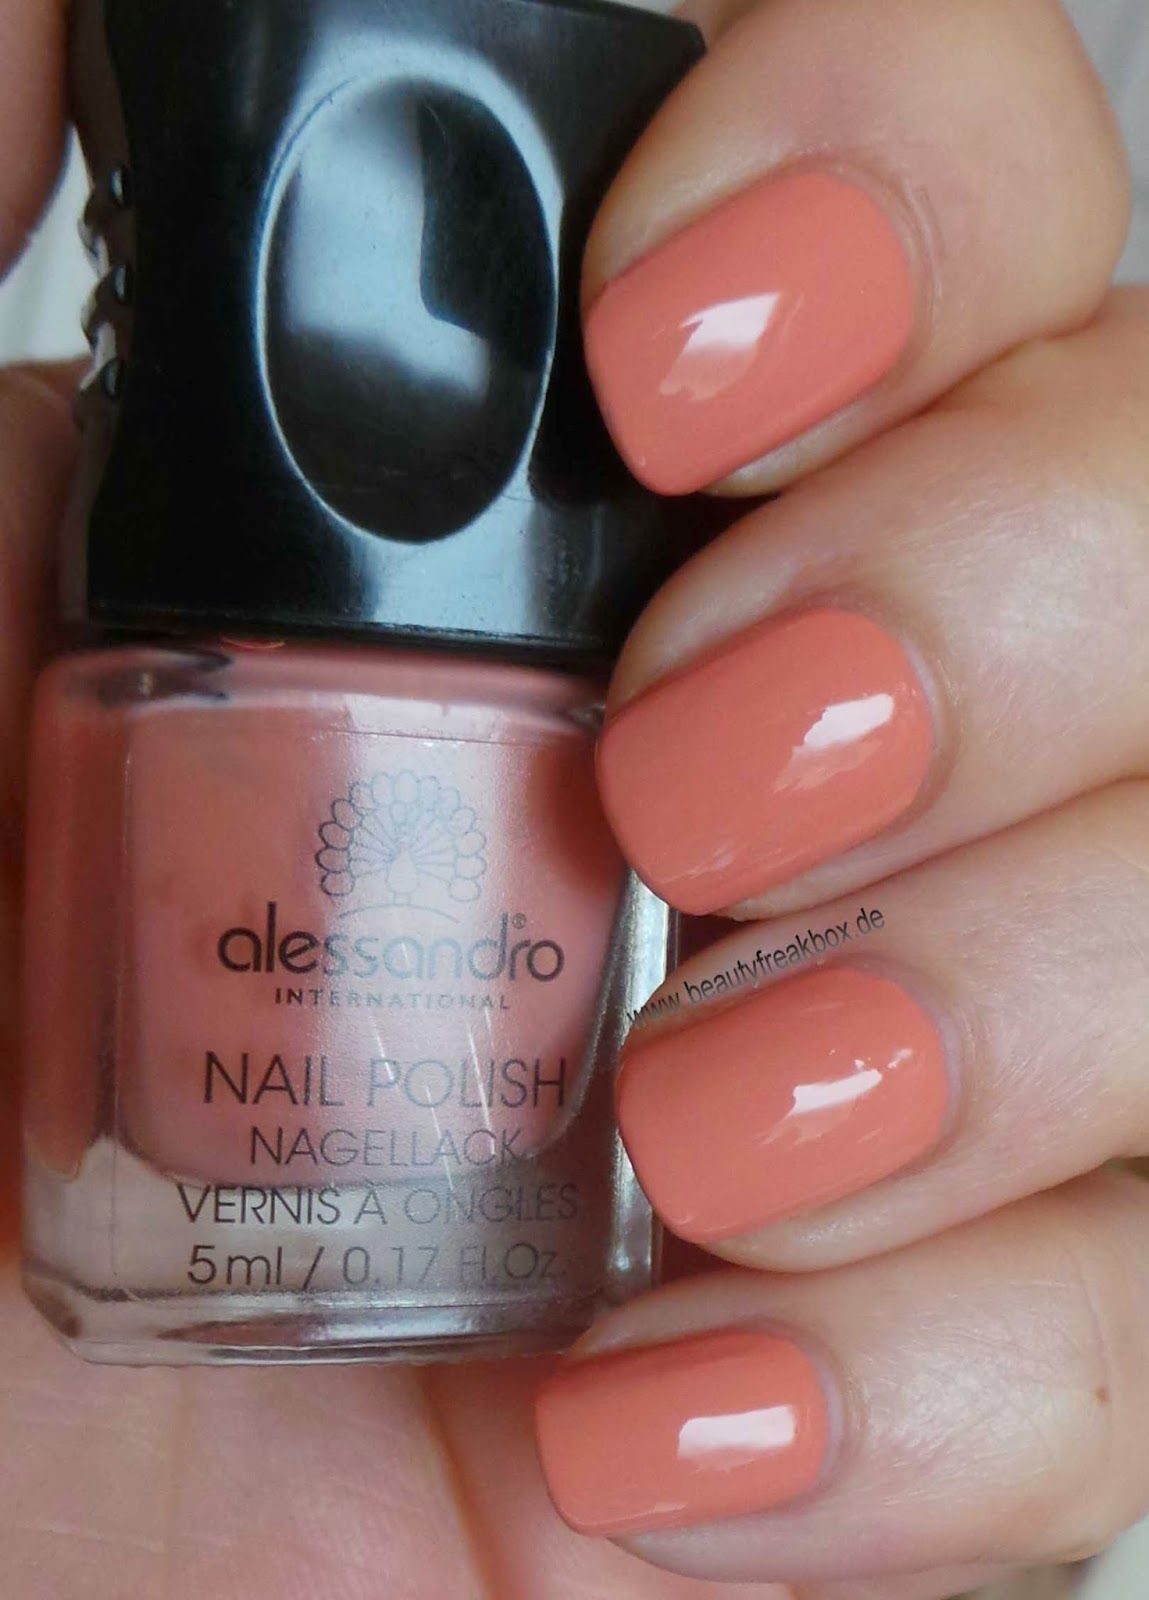 alessandro sunday rose nagellack apricot touch nails. Black Bedroom Furniture Sets. Home Design Ideas